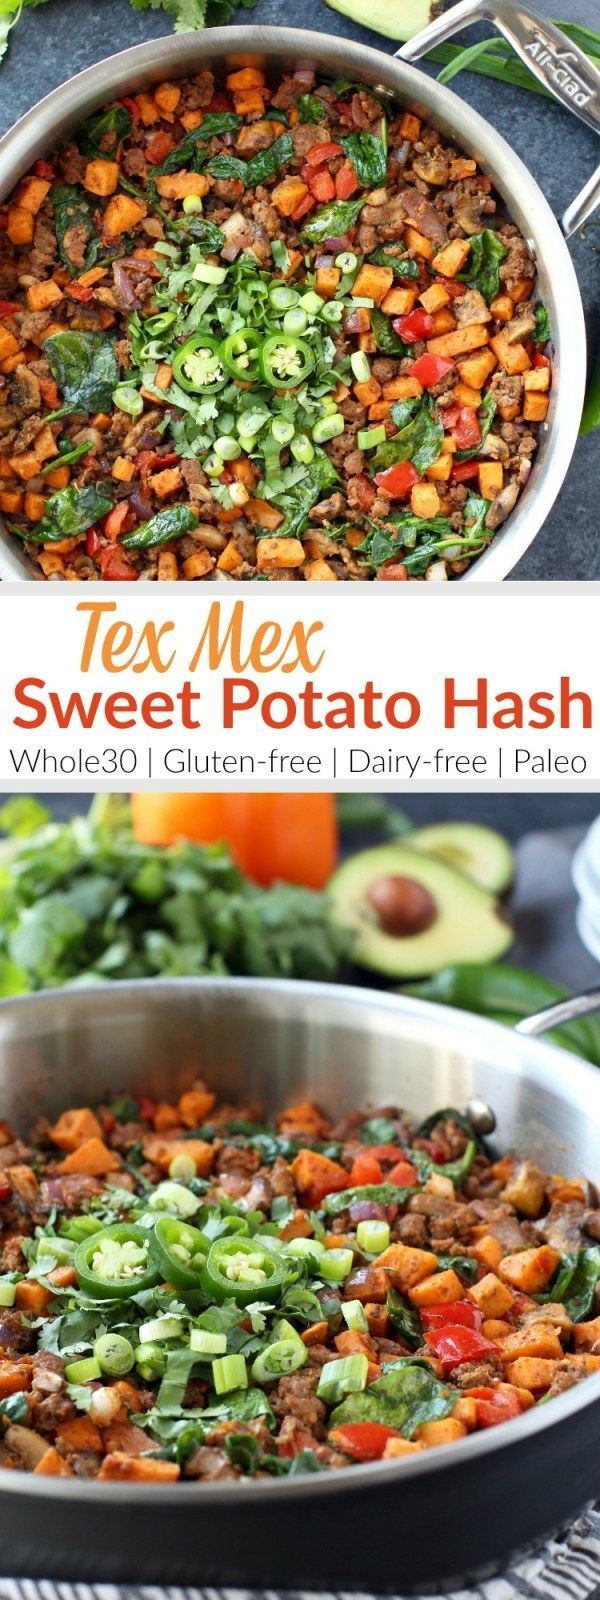 TEX MEX SWEET POTATO HASH | Make good use of taco meat leftovers and give this easy one-dish Sweet Potato Tex Mex Hash a try. A tasty Whole30 and egg-free breakfast option.| http://therealfoodrds.com/tex-mex-sweet-potato-hash/ (Paleo Vegetarian Menu)